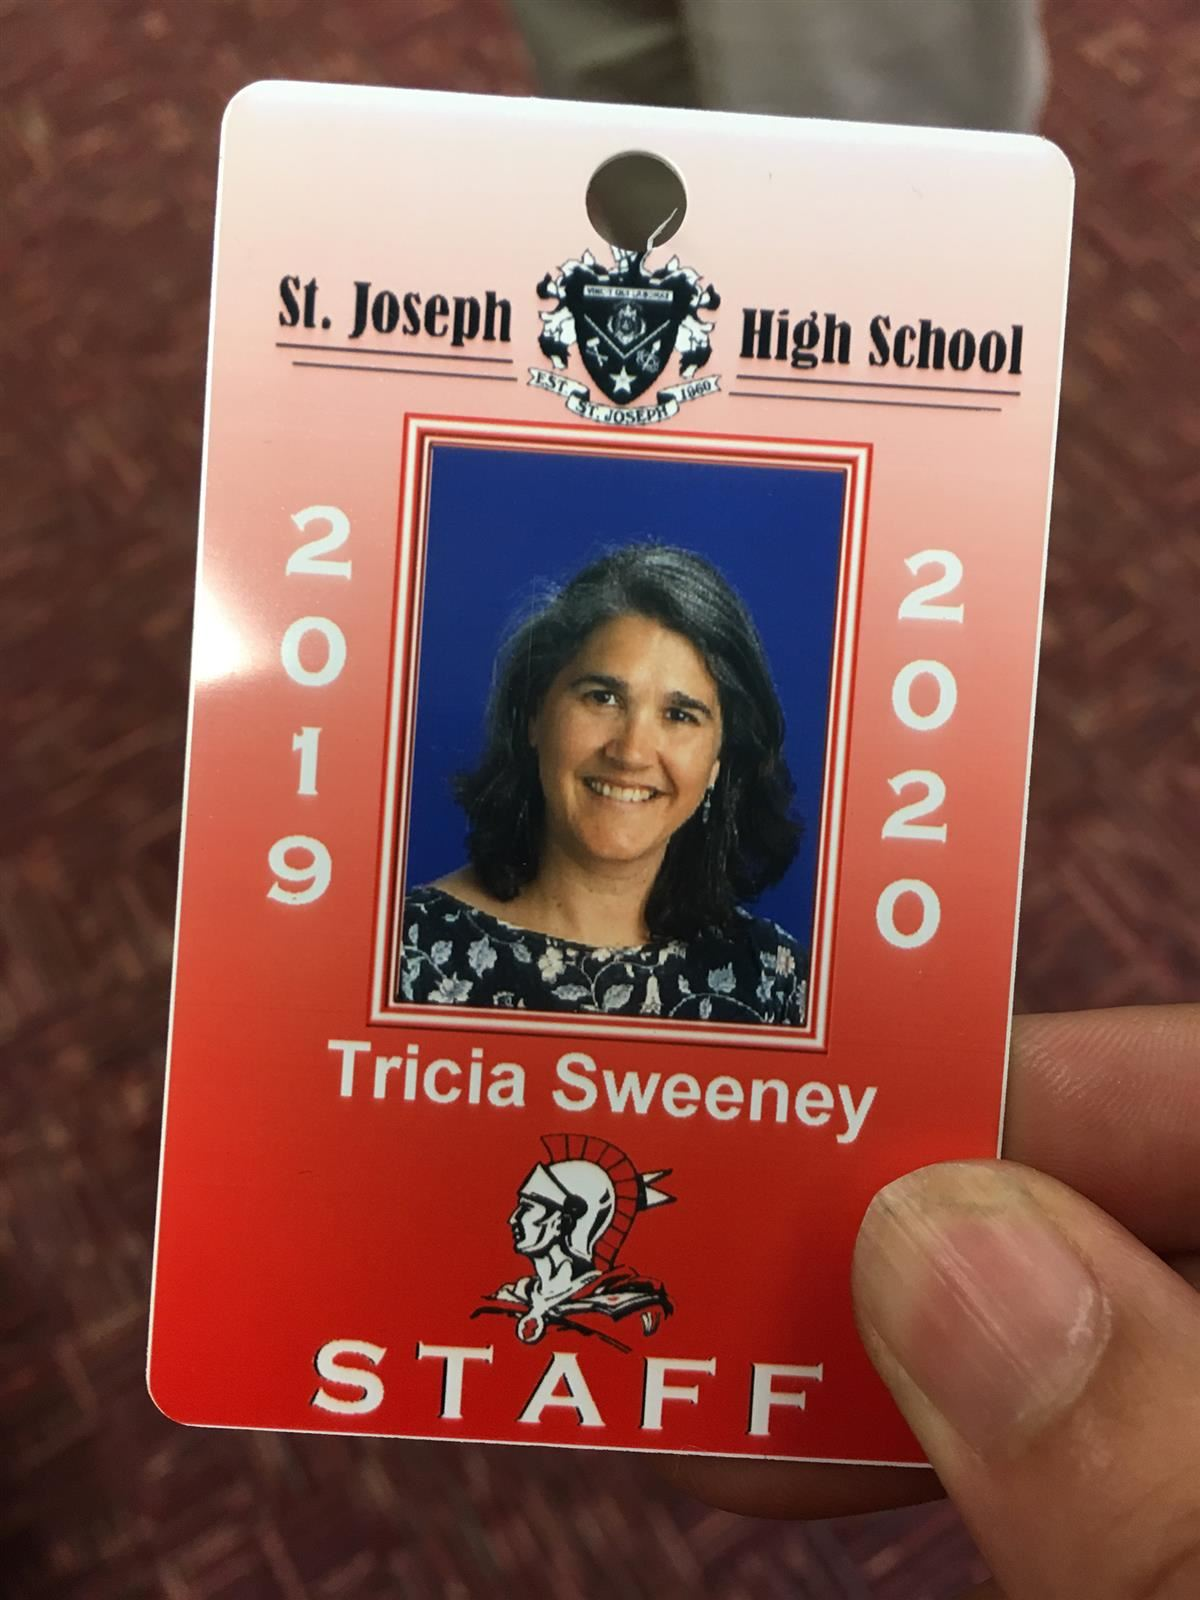 Ms. Tricia Sweeney